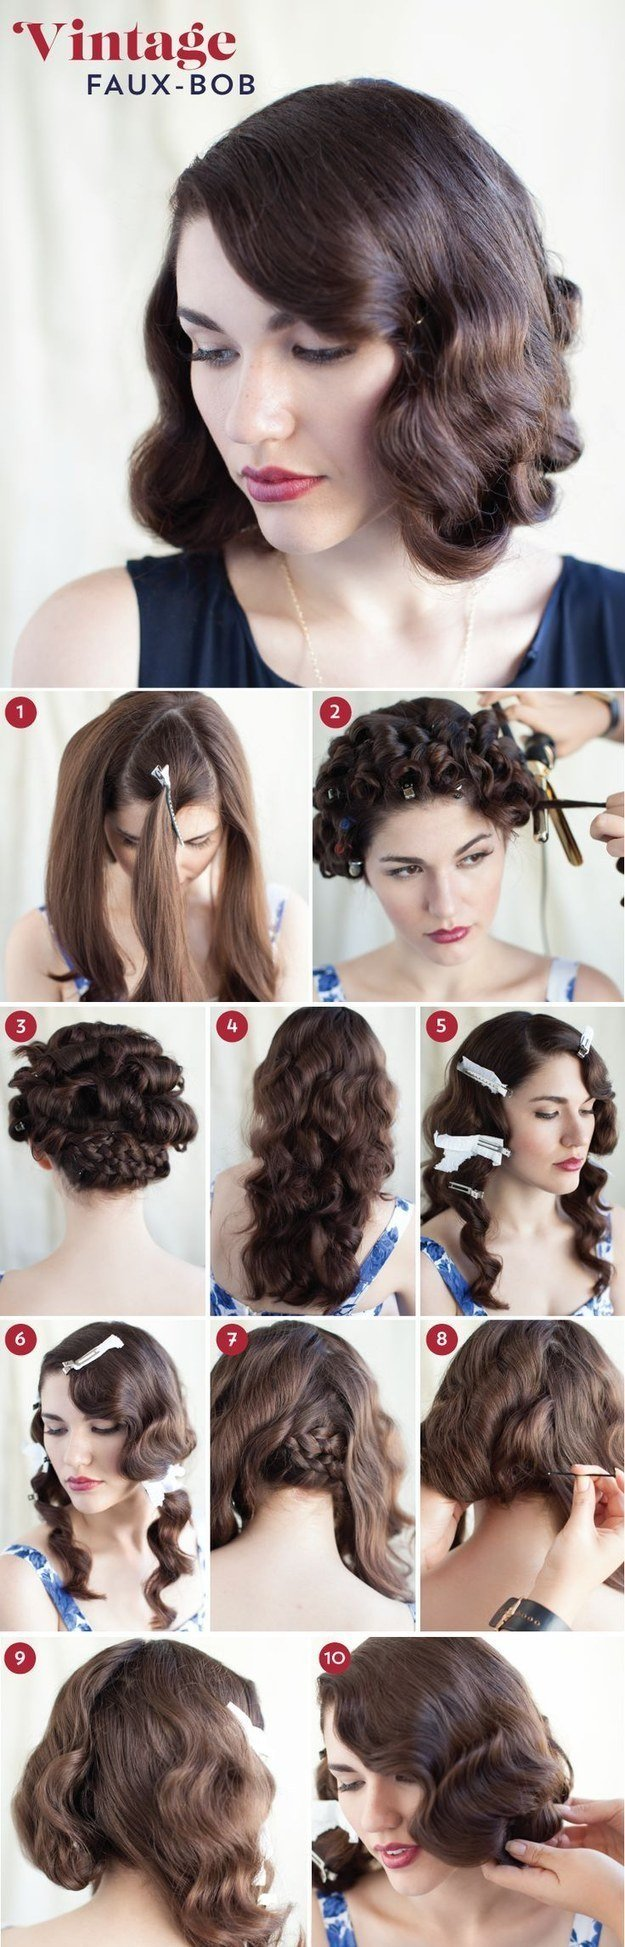 New 30 Diy Vintage Hairstyle Tutorials For Short Medium Long Ideas With Pictures